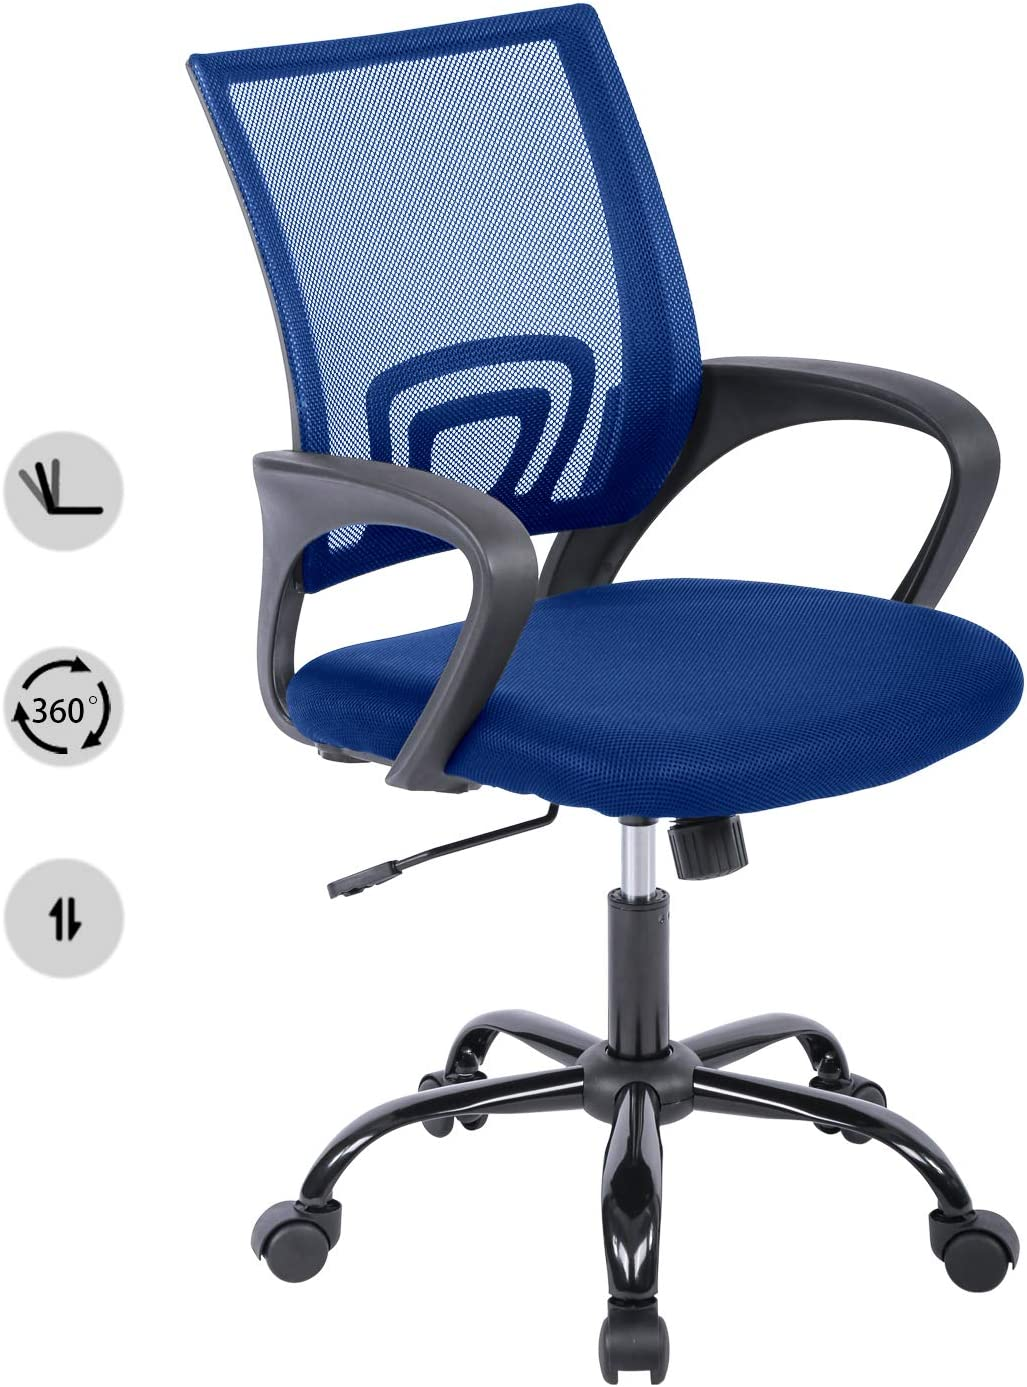 HCB Office Chair, Ergonomic Upgraded Desk Chair, Executive Swivel Computer Chair with Lumbar Support for Home, Office(Blue)